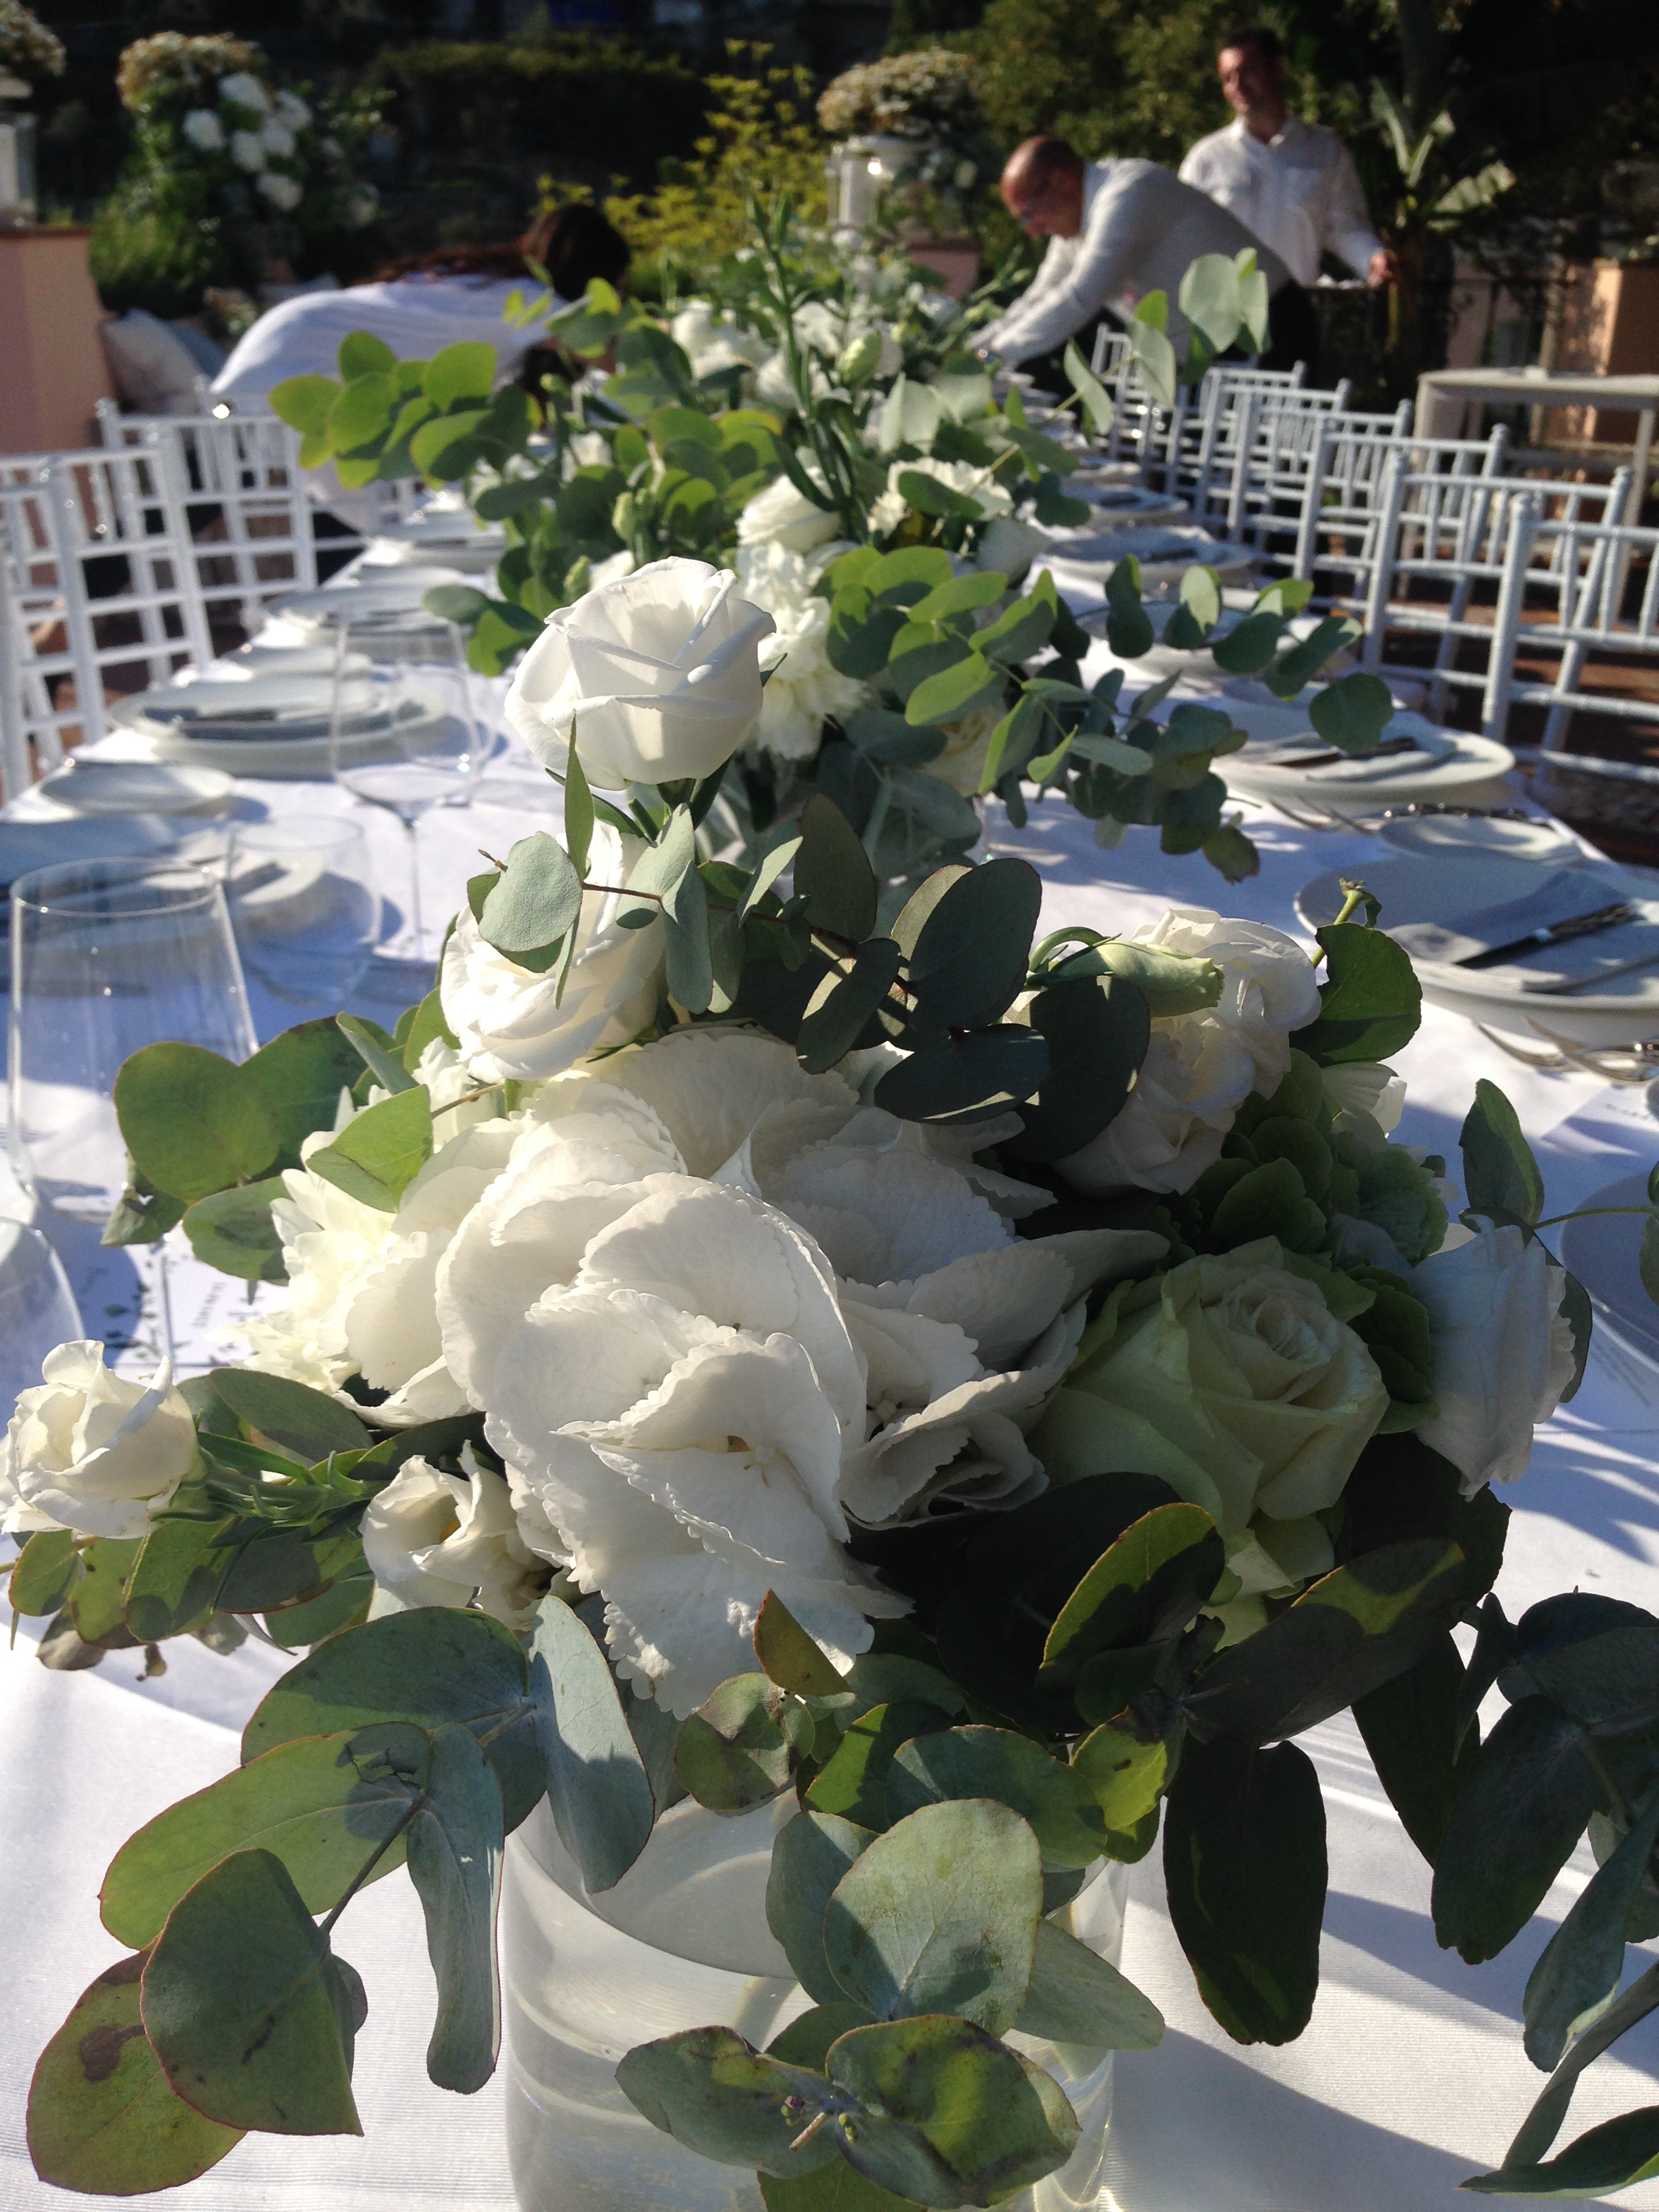 http://www.weddingamalfi.com/wp-content/uploads/Laura-and-Jarrod-fresh-flowers-wedding-table-decorations.jpg